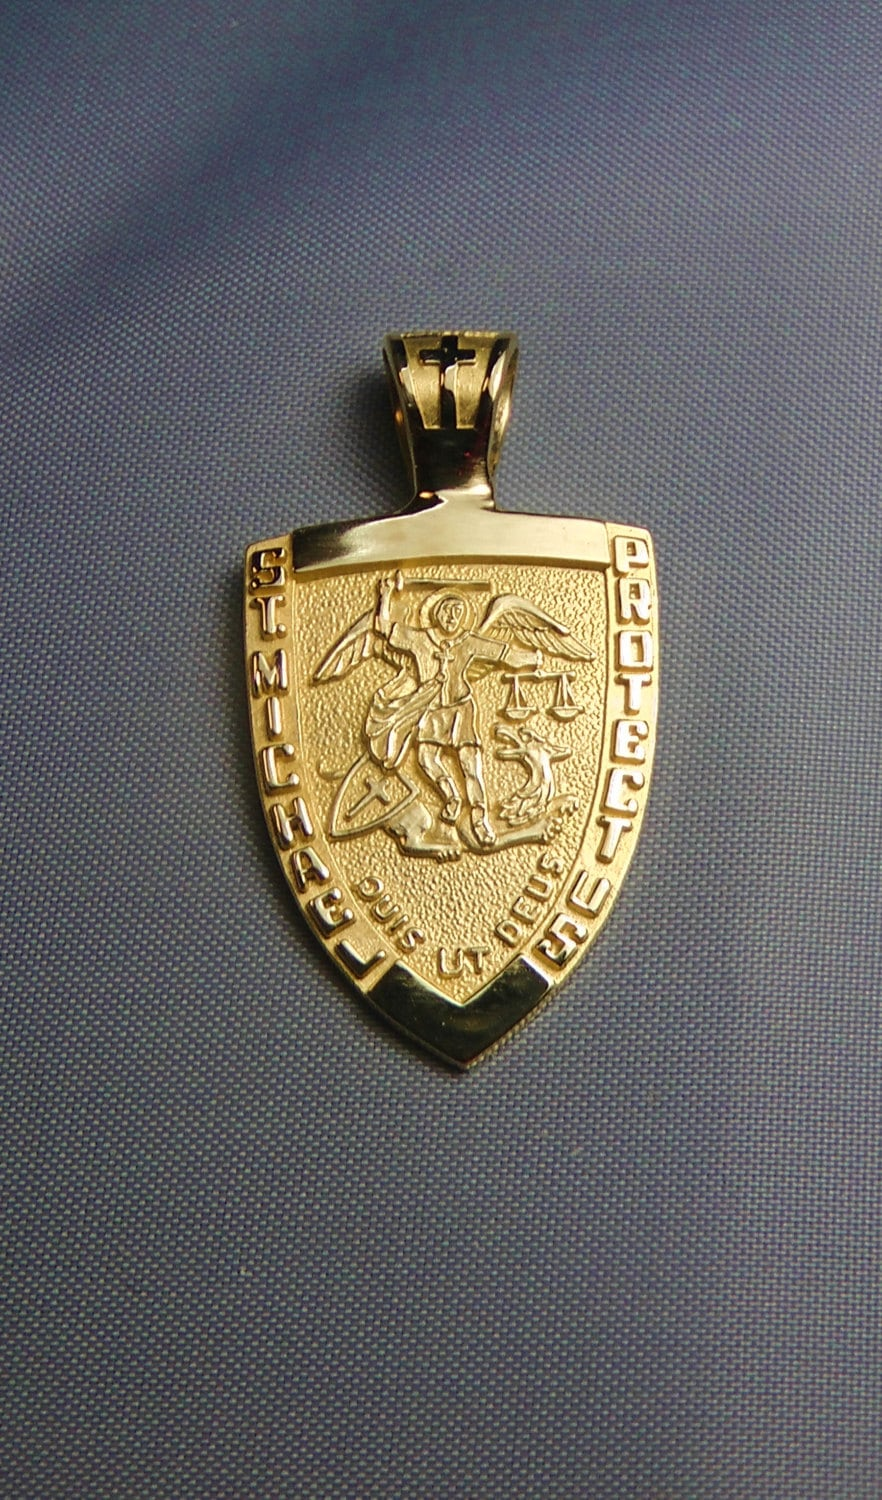 St michael medal 14k gold archangel patron saint of police zoom mozeypictures Image collections